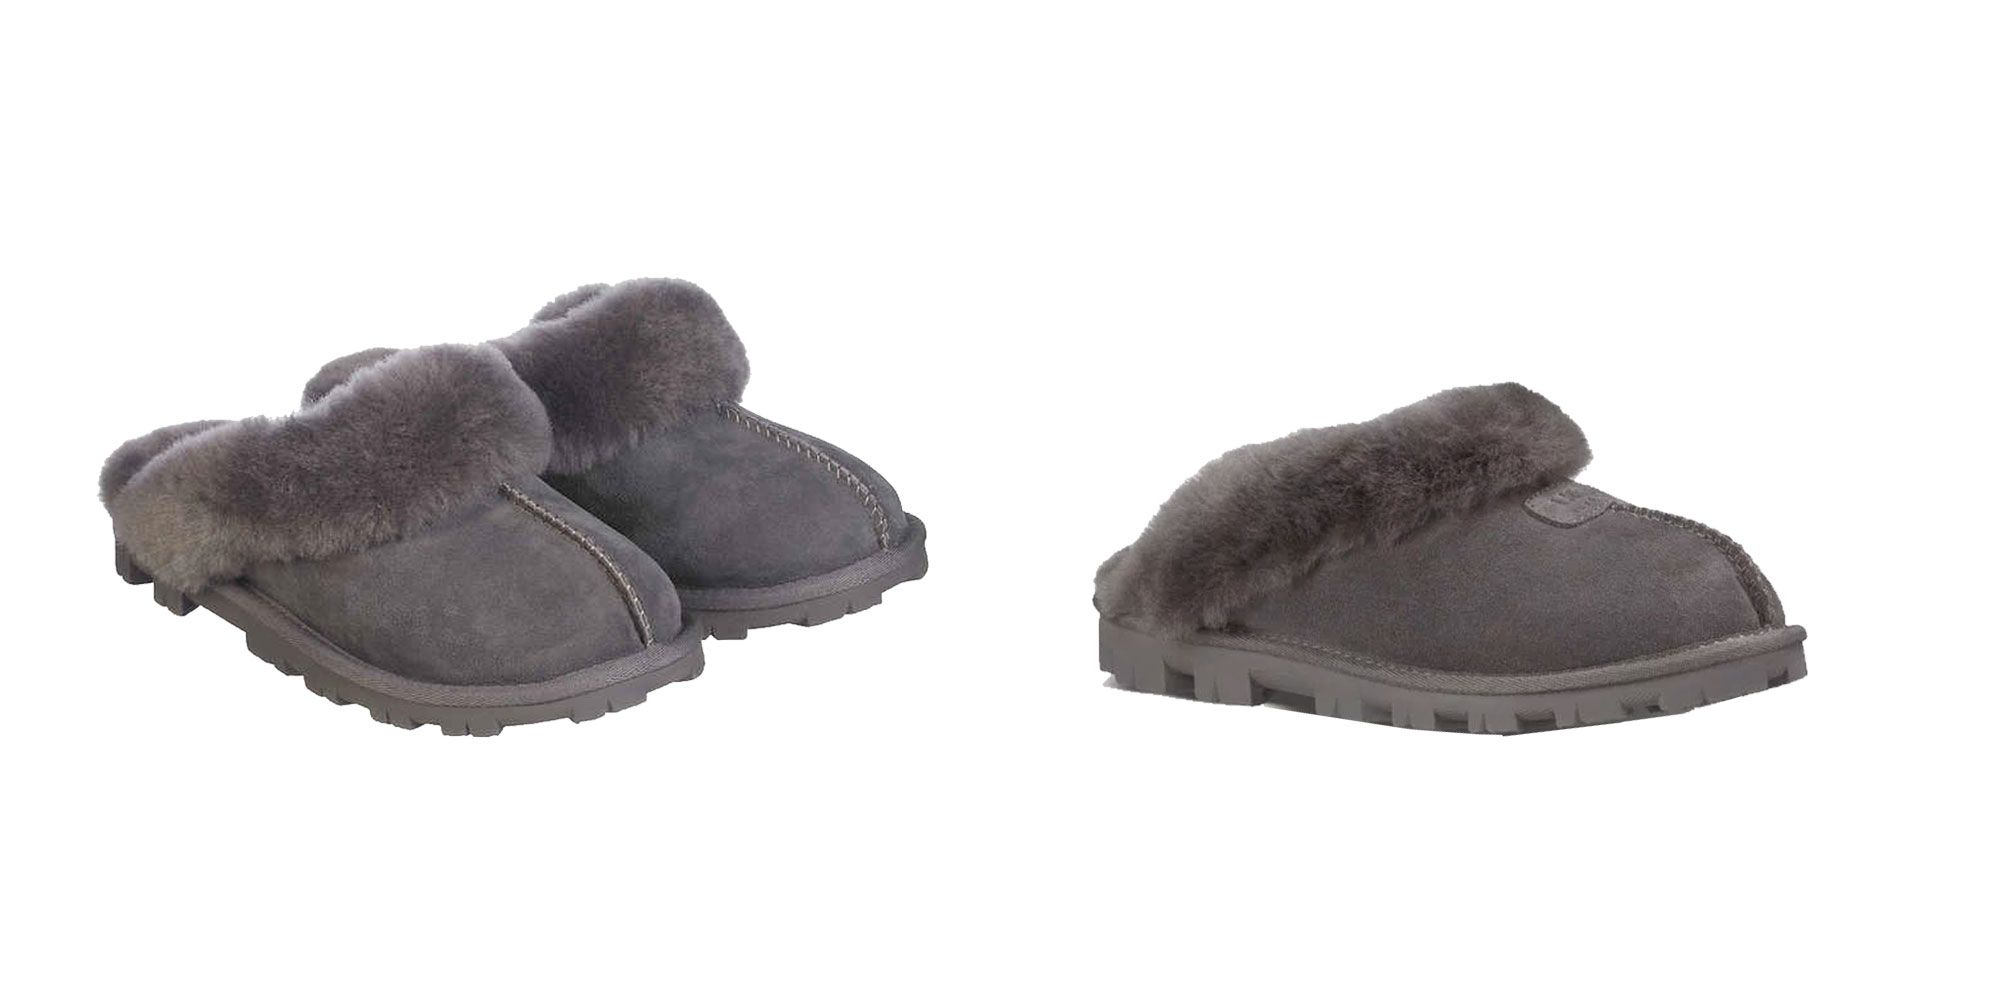 Shearling Slippers Look Just Like Uggs